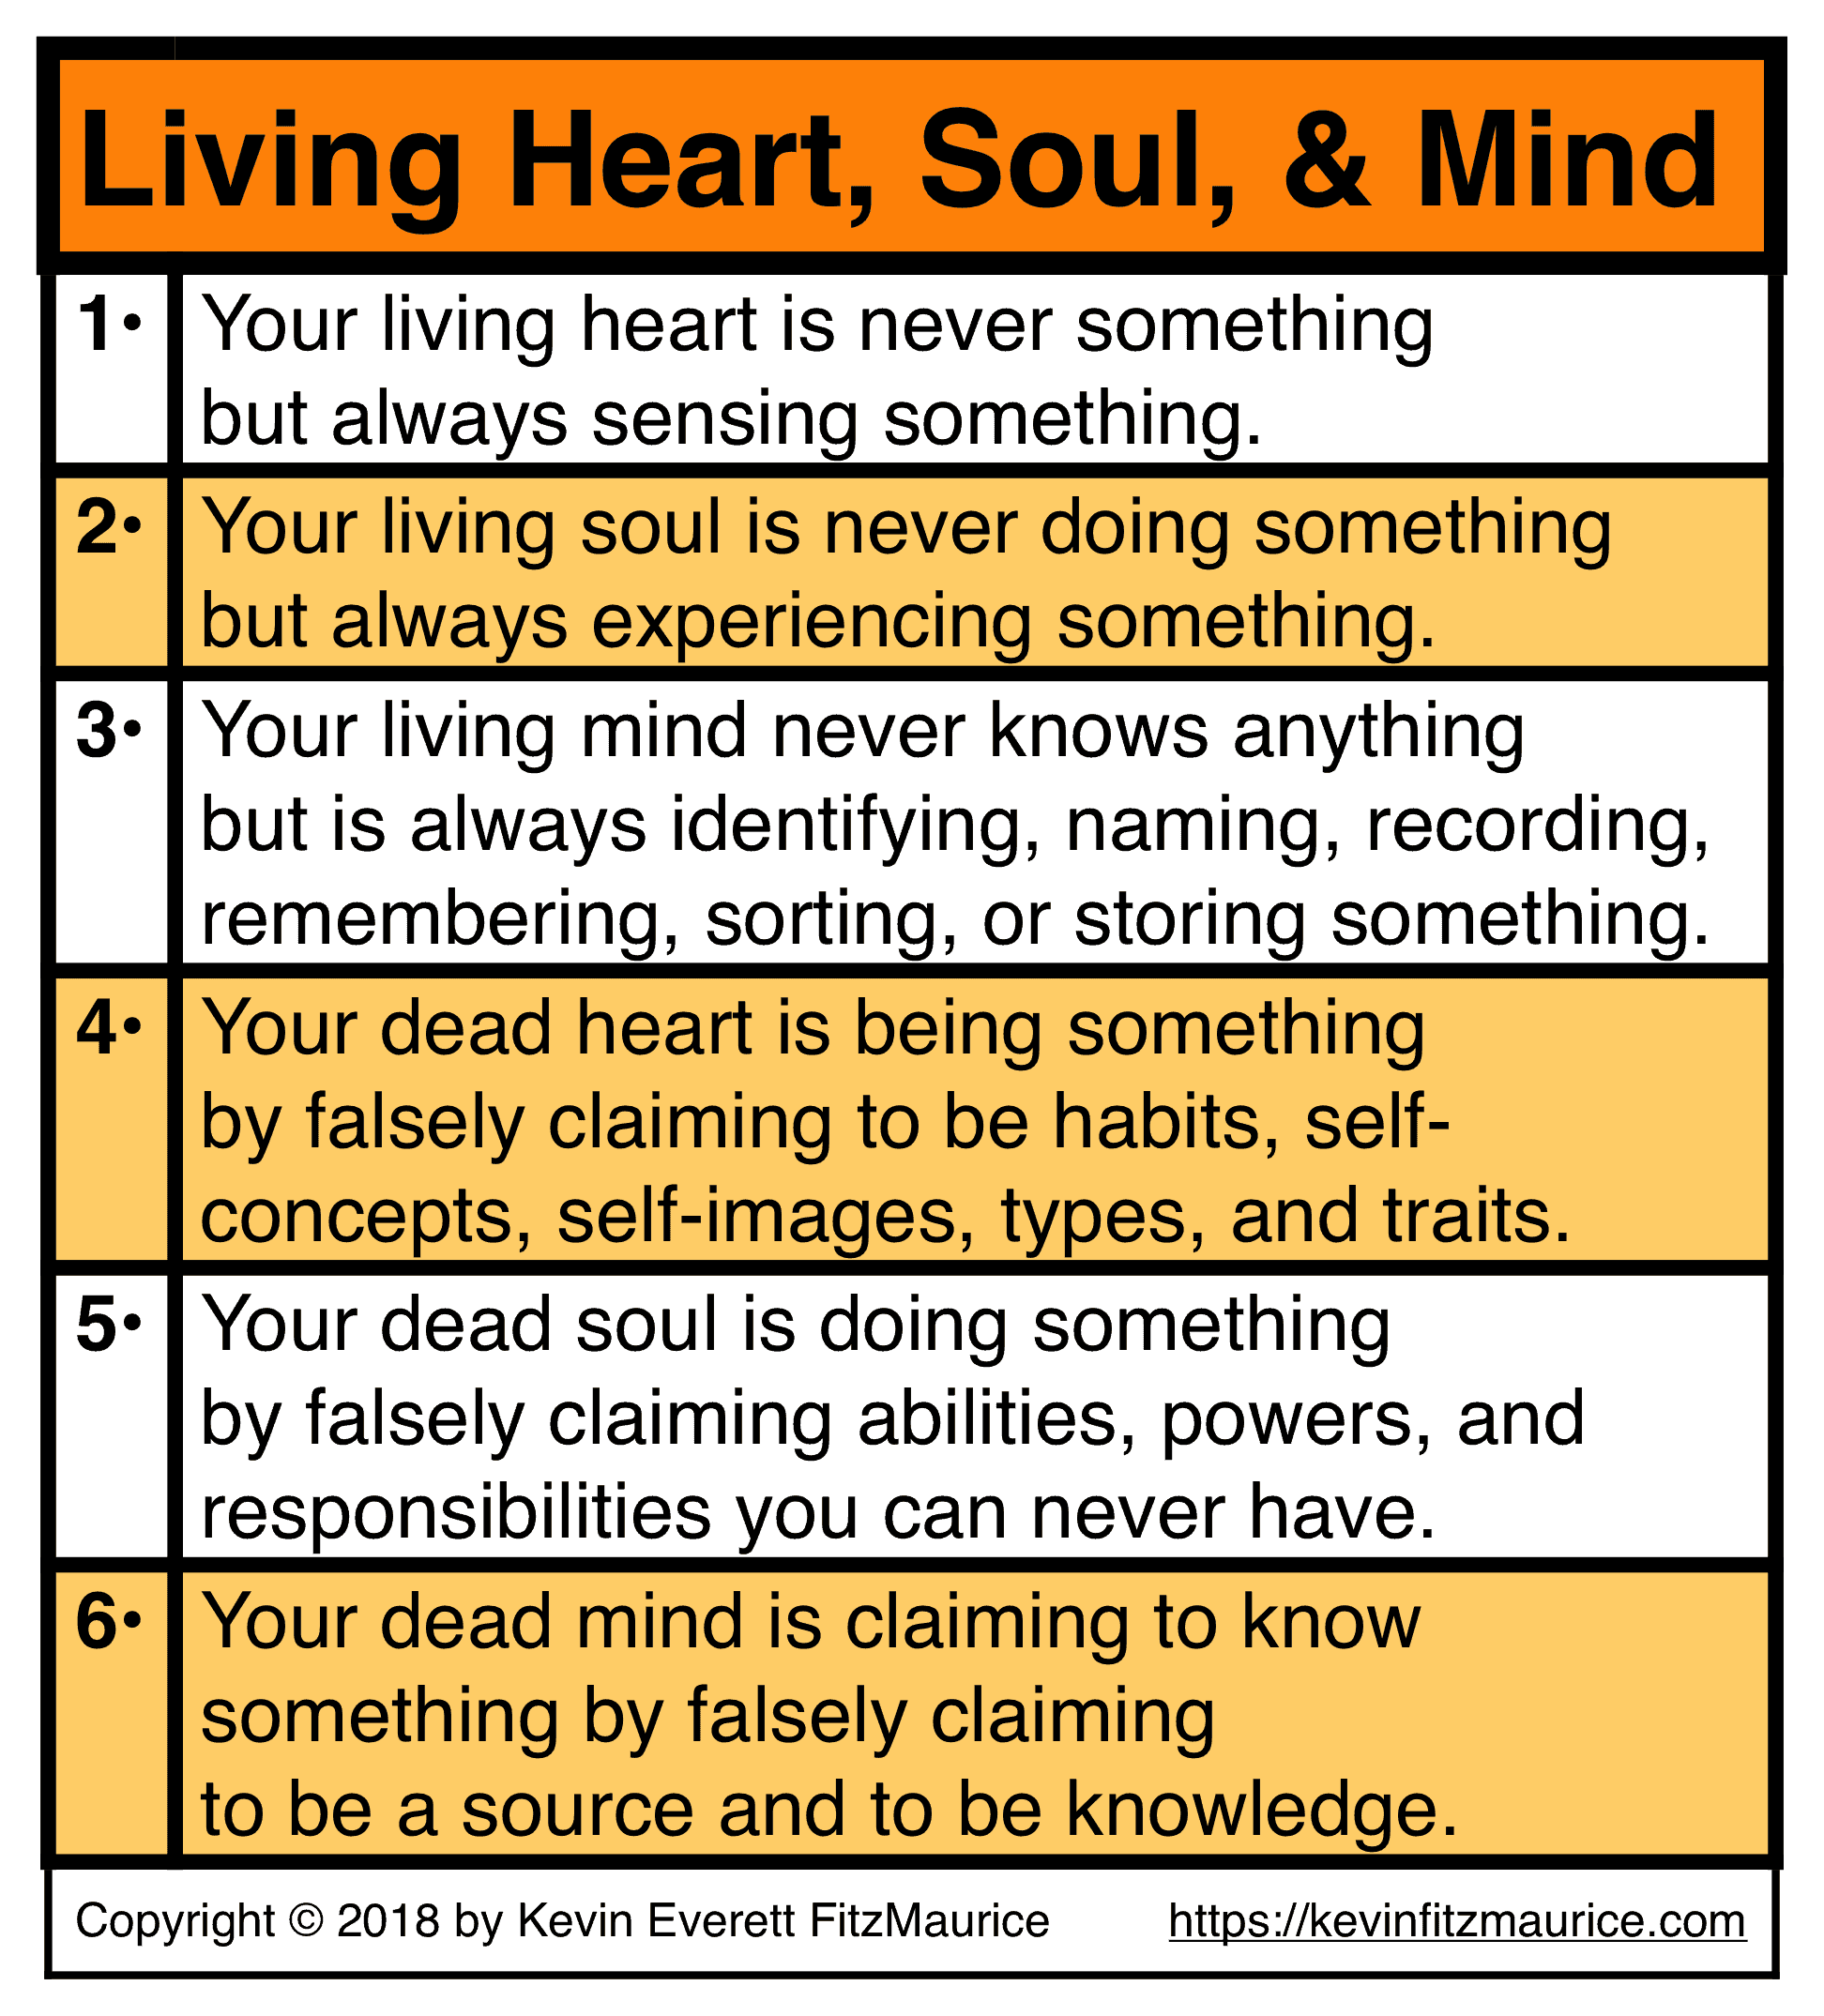 Living Heart, Soul, & Mind